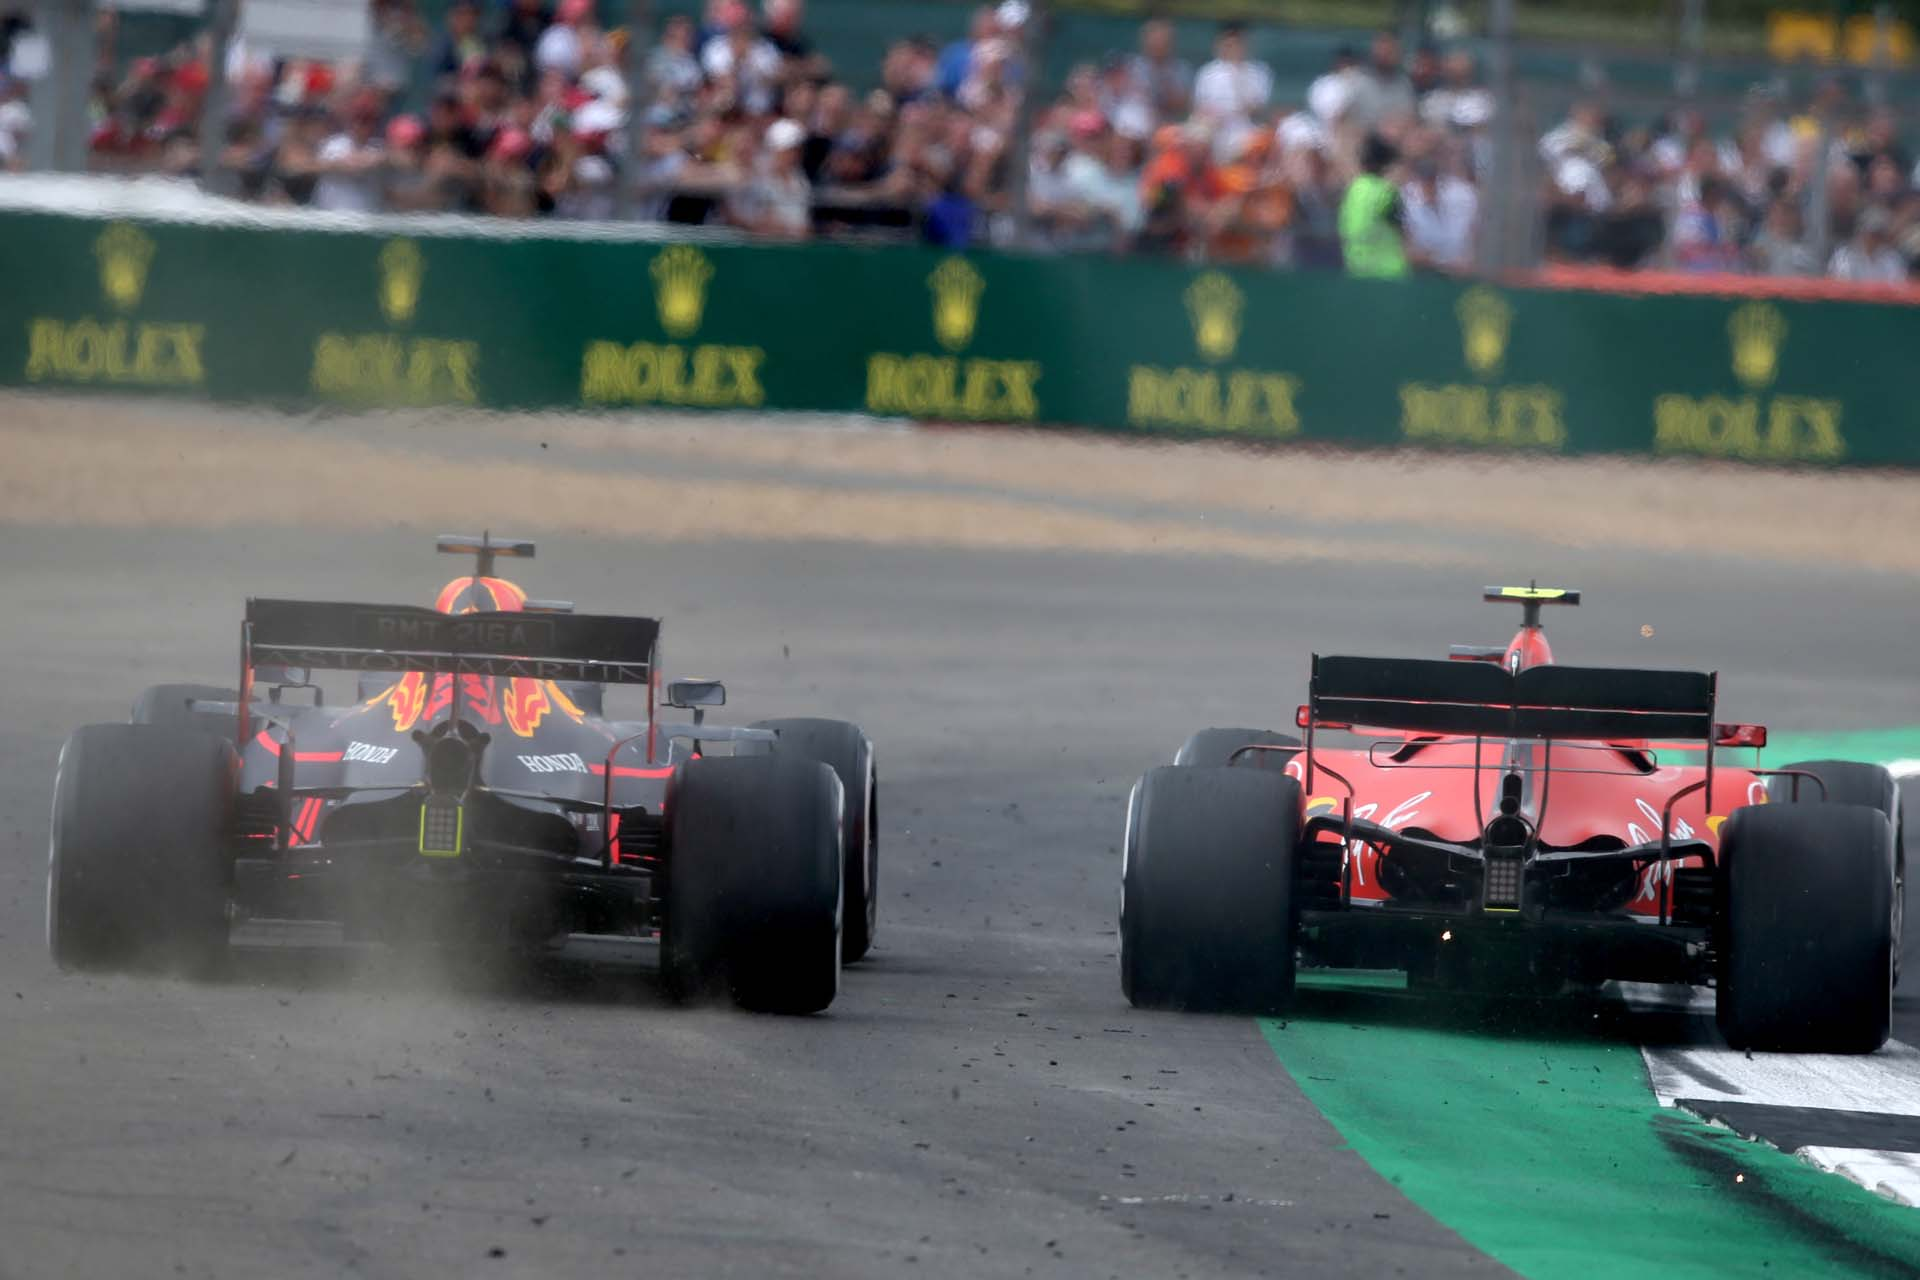 NORTHAMPTON, ENGLAND - JULY 14: Max Verstappen of the Netherlands driving the (33) Aston Martin Red Bull Racing RB15 runs wide as he battles for track position with Charles Leclerc of Monaco driving the (16) Scuderia Ferrari SF90 during the F1 Grand Prix of Great Britain at Silverstone on July 14, 2019 in Northampton, England. (Photo by Charles Coates/Getty Images) // Getty Images / Red Bull Content Pool  // AP-1ZXUVU8QN2111 // Usage for editorial use only // Please go to www.redbullcontentpool.com for further information. //